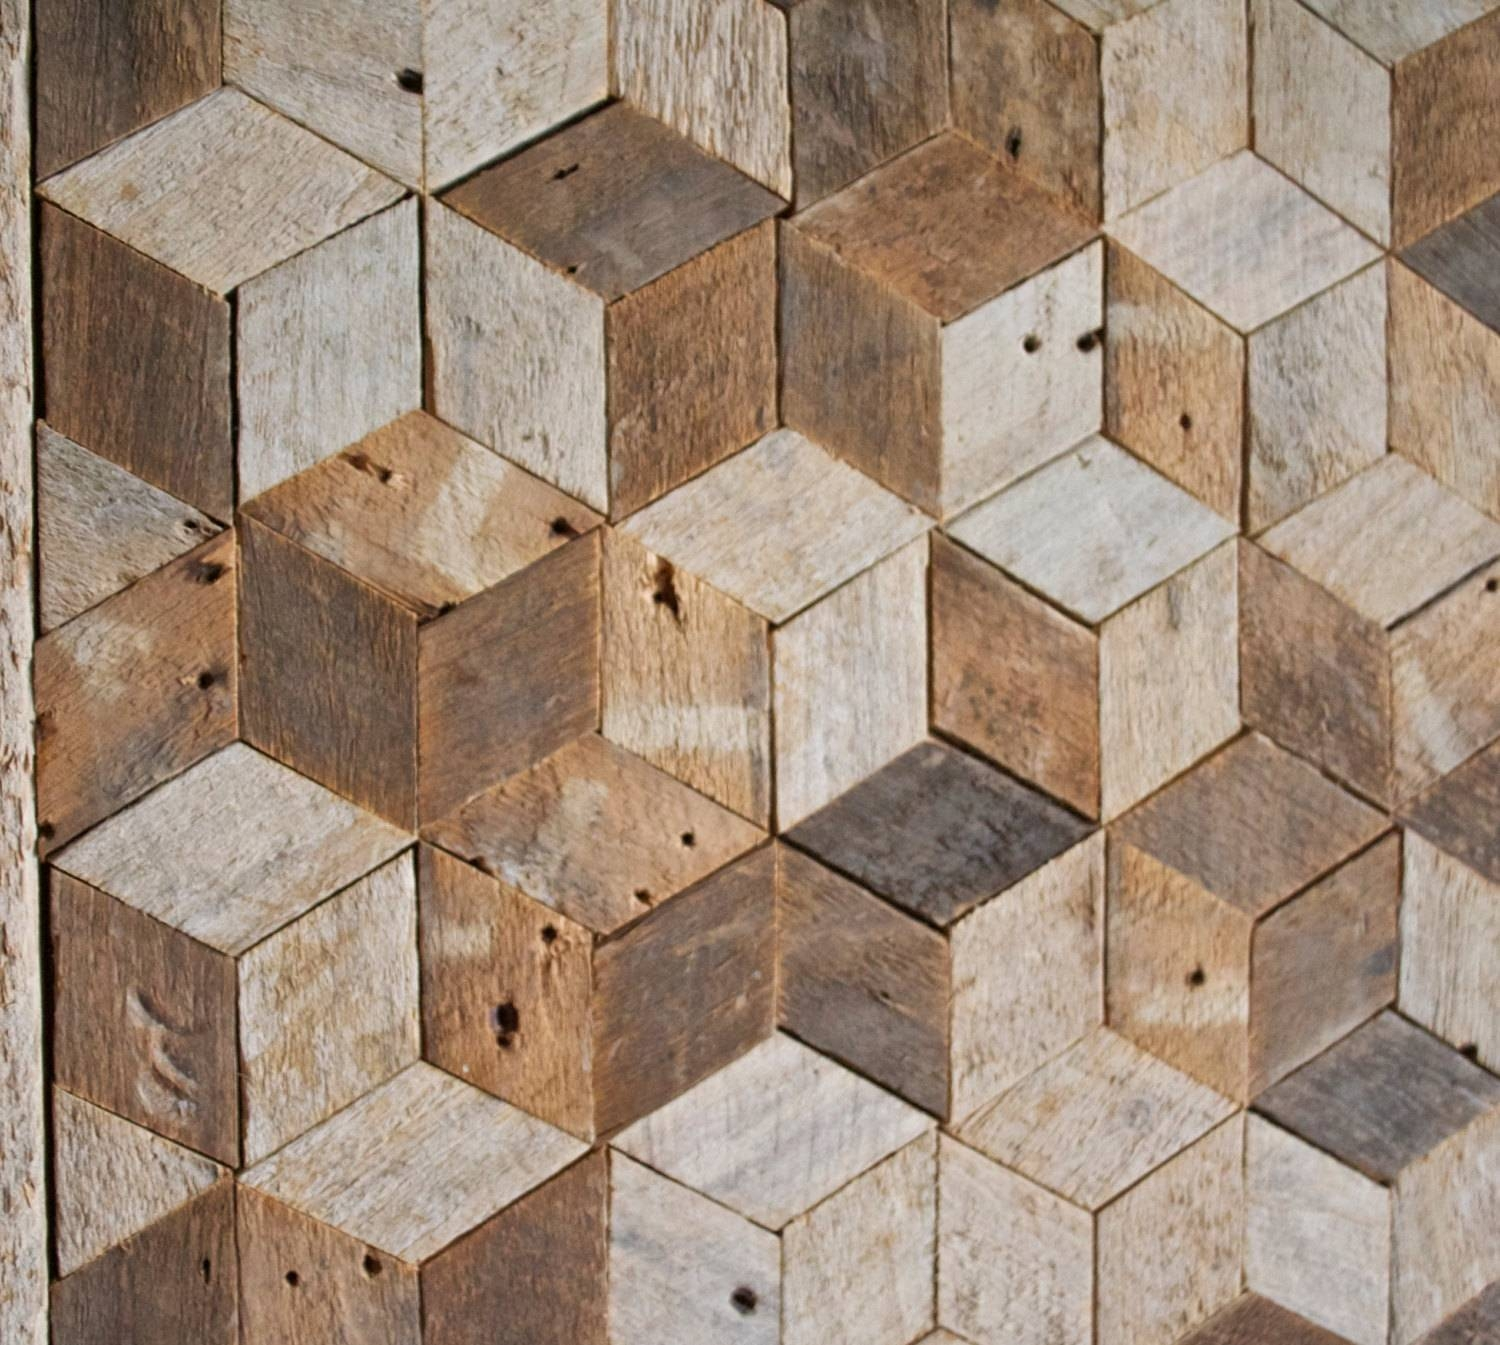 Reclaimed Wood Wall Art, Decor, Pattern, Lath, 3D, Cube, Geometric For Latest Cubes 3D Wall Art (Gallery 12 of 20)